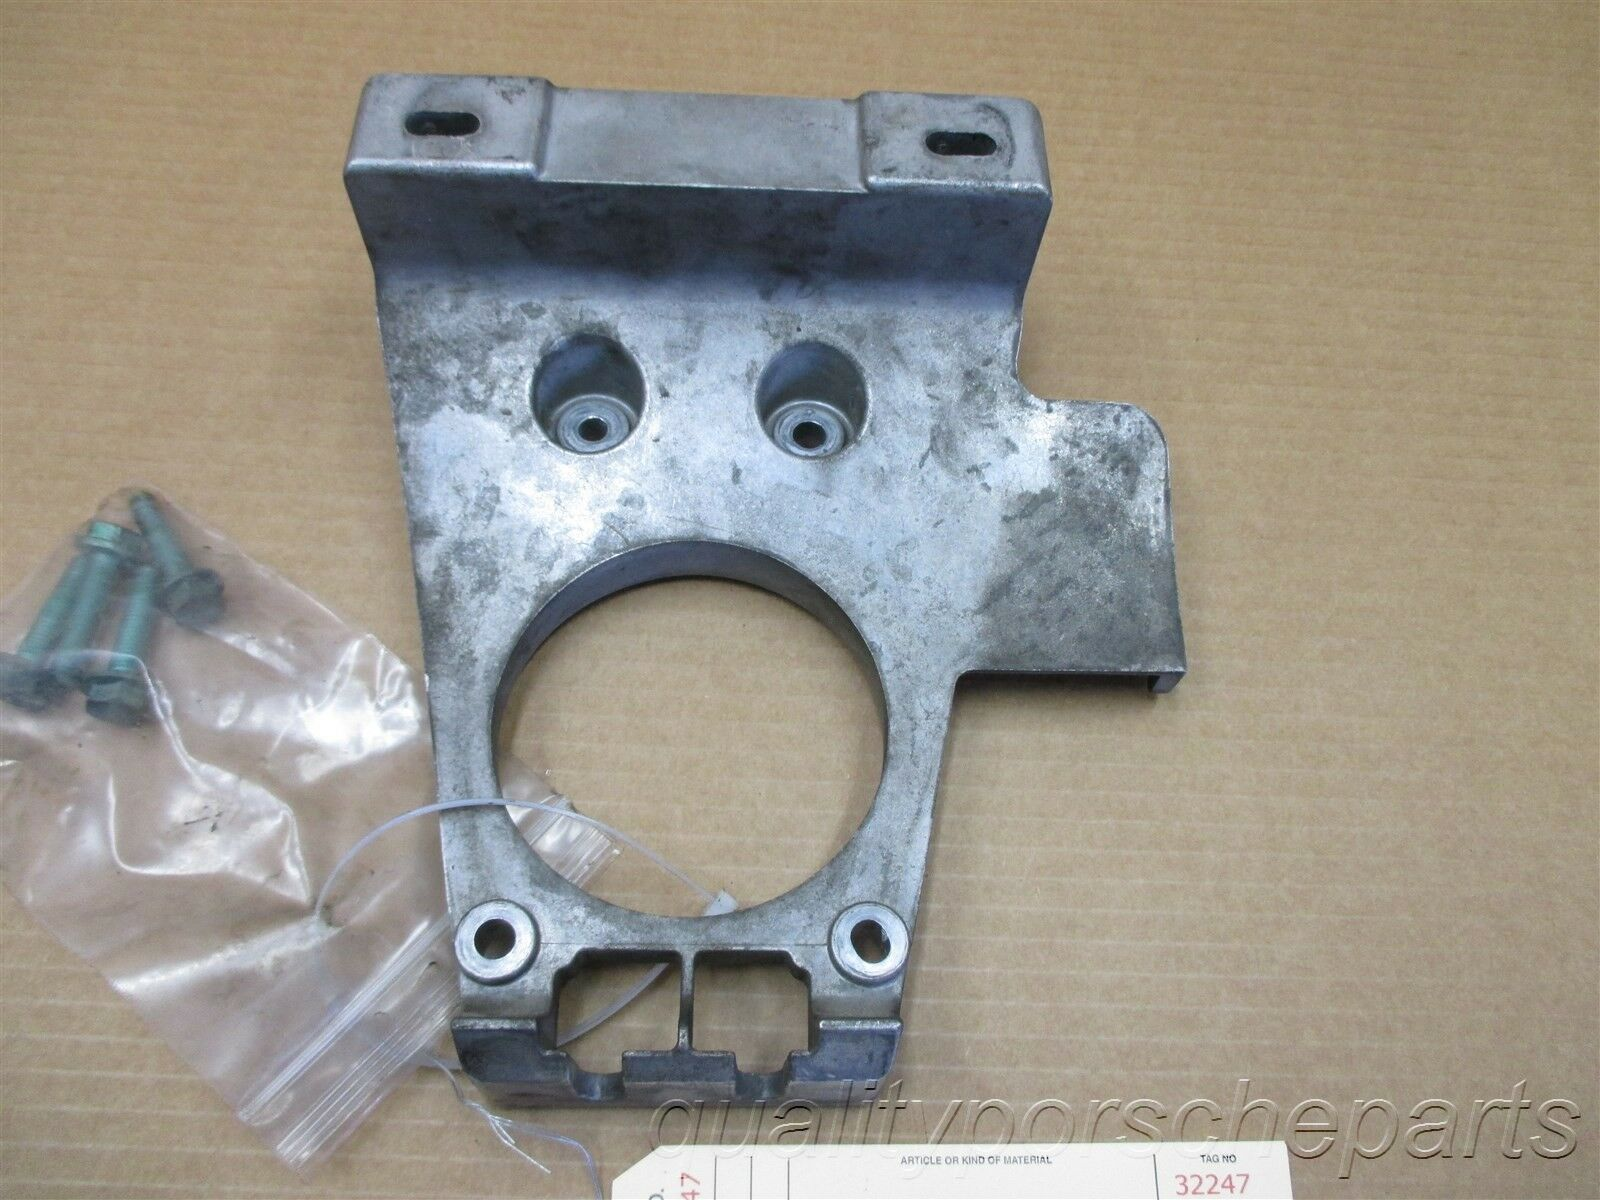 02 Boxster S Porsche 986 Manual TRANSMISSION MOUNTING BRACKET 99611122403 68,468